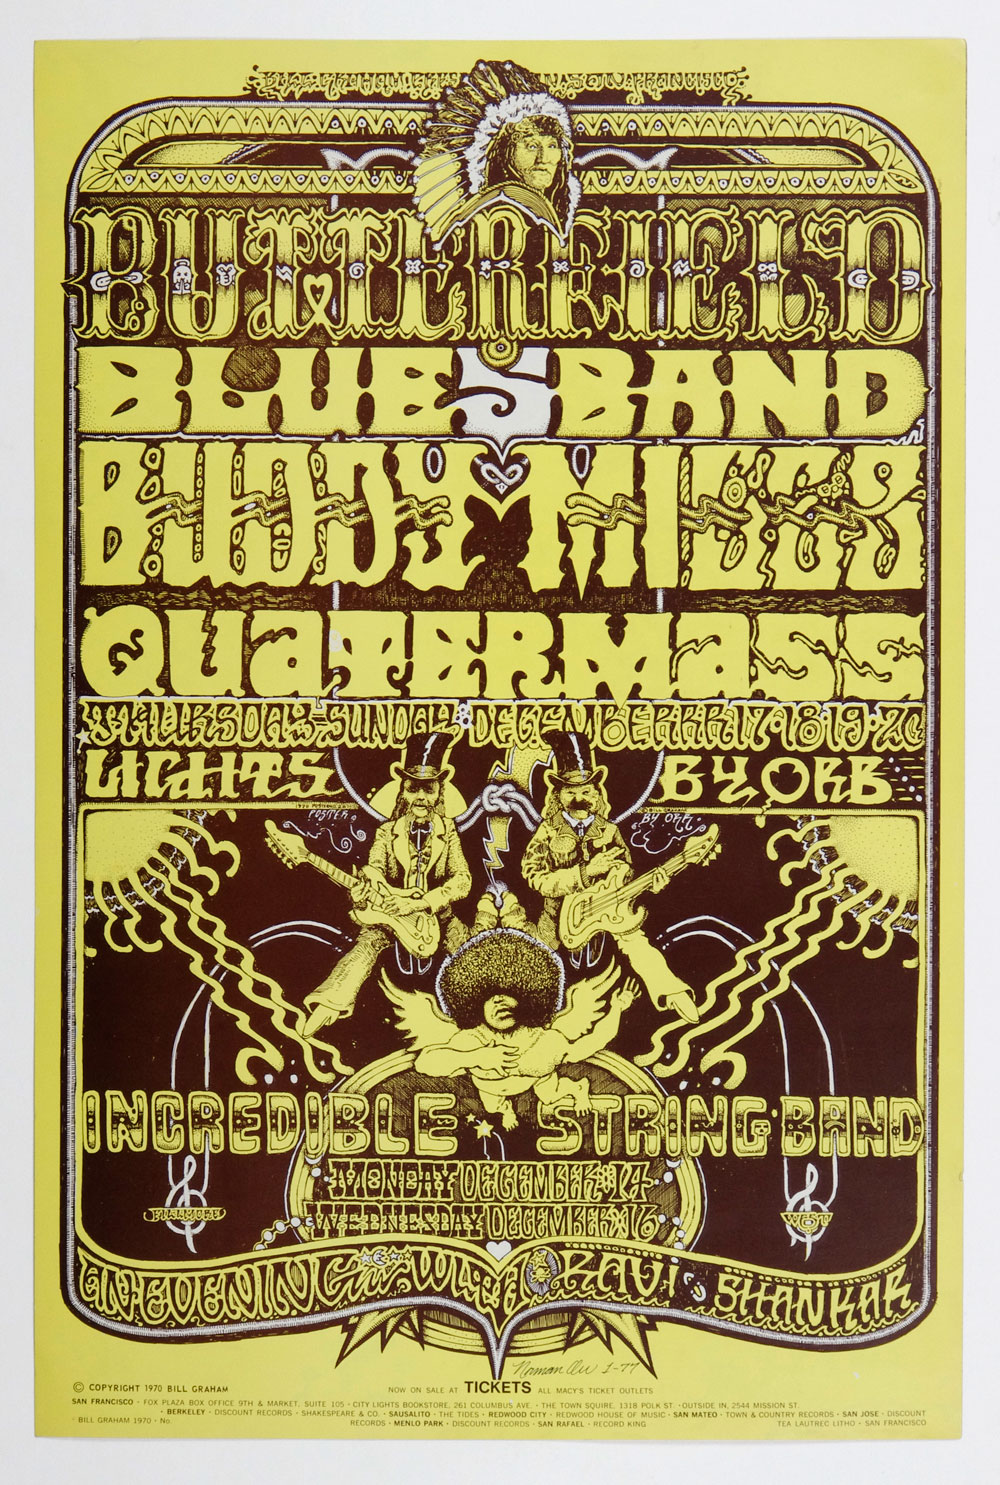 BG 261 Poster Incredible String Band Ravi Shankar 1970 Dec 14 Norman Orr signed